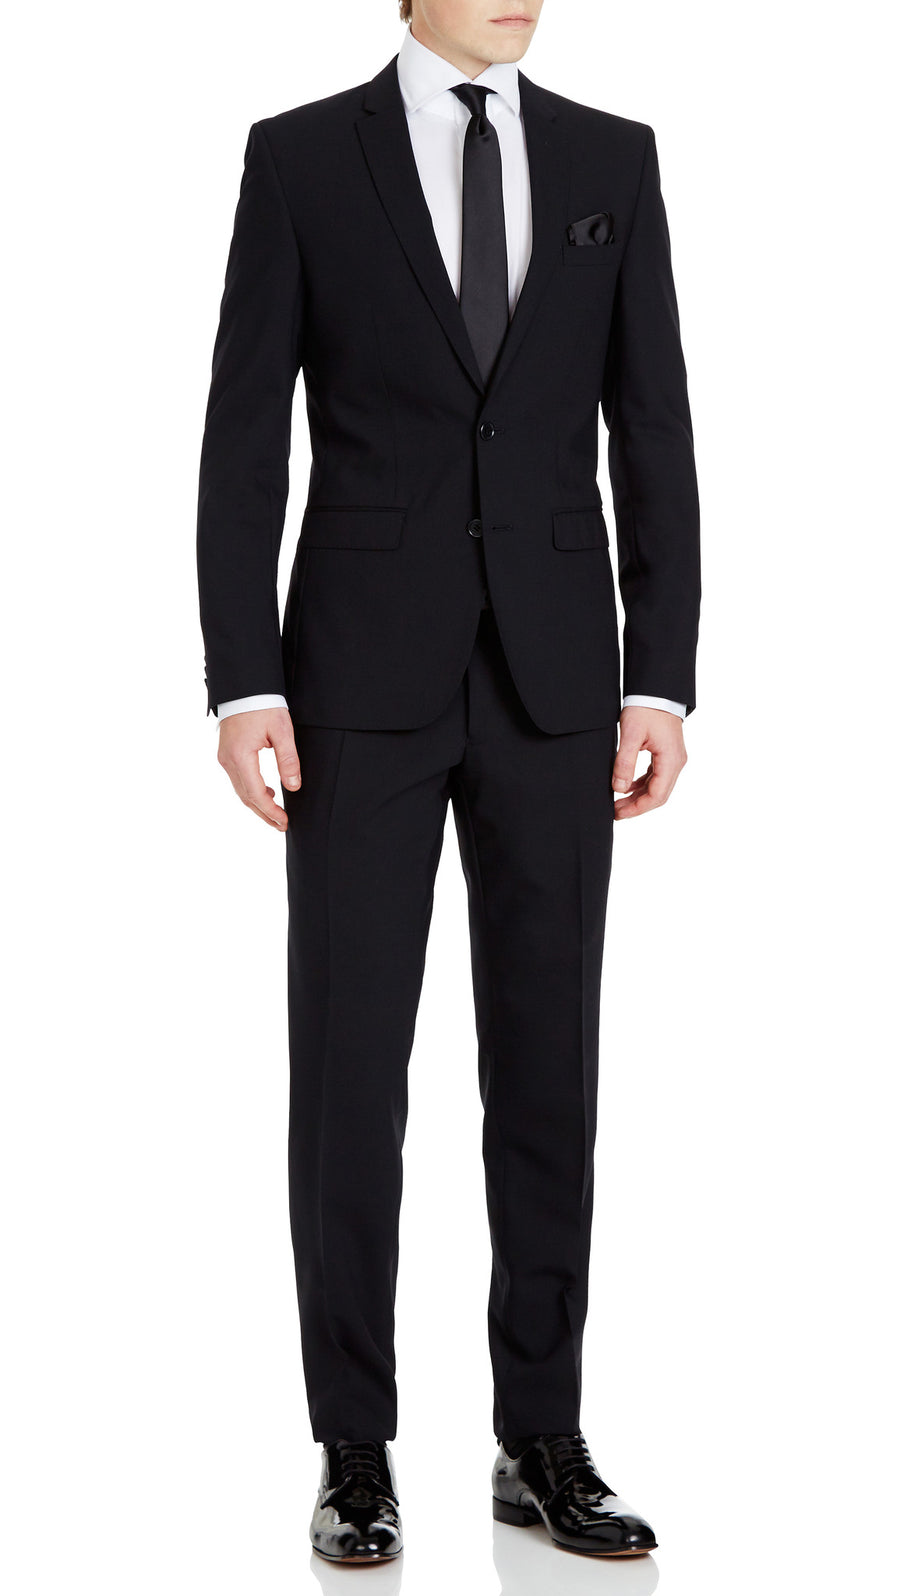 Trench Slim Fit Suit in Black - Ron Bennett Menswear  - 3